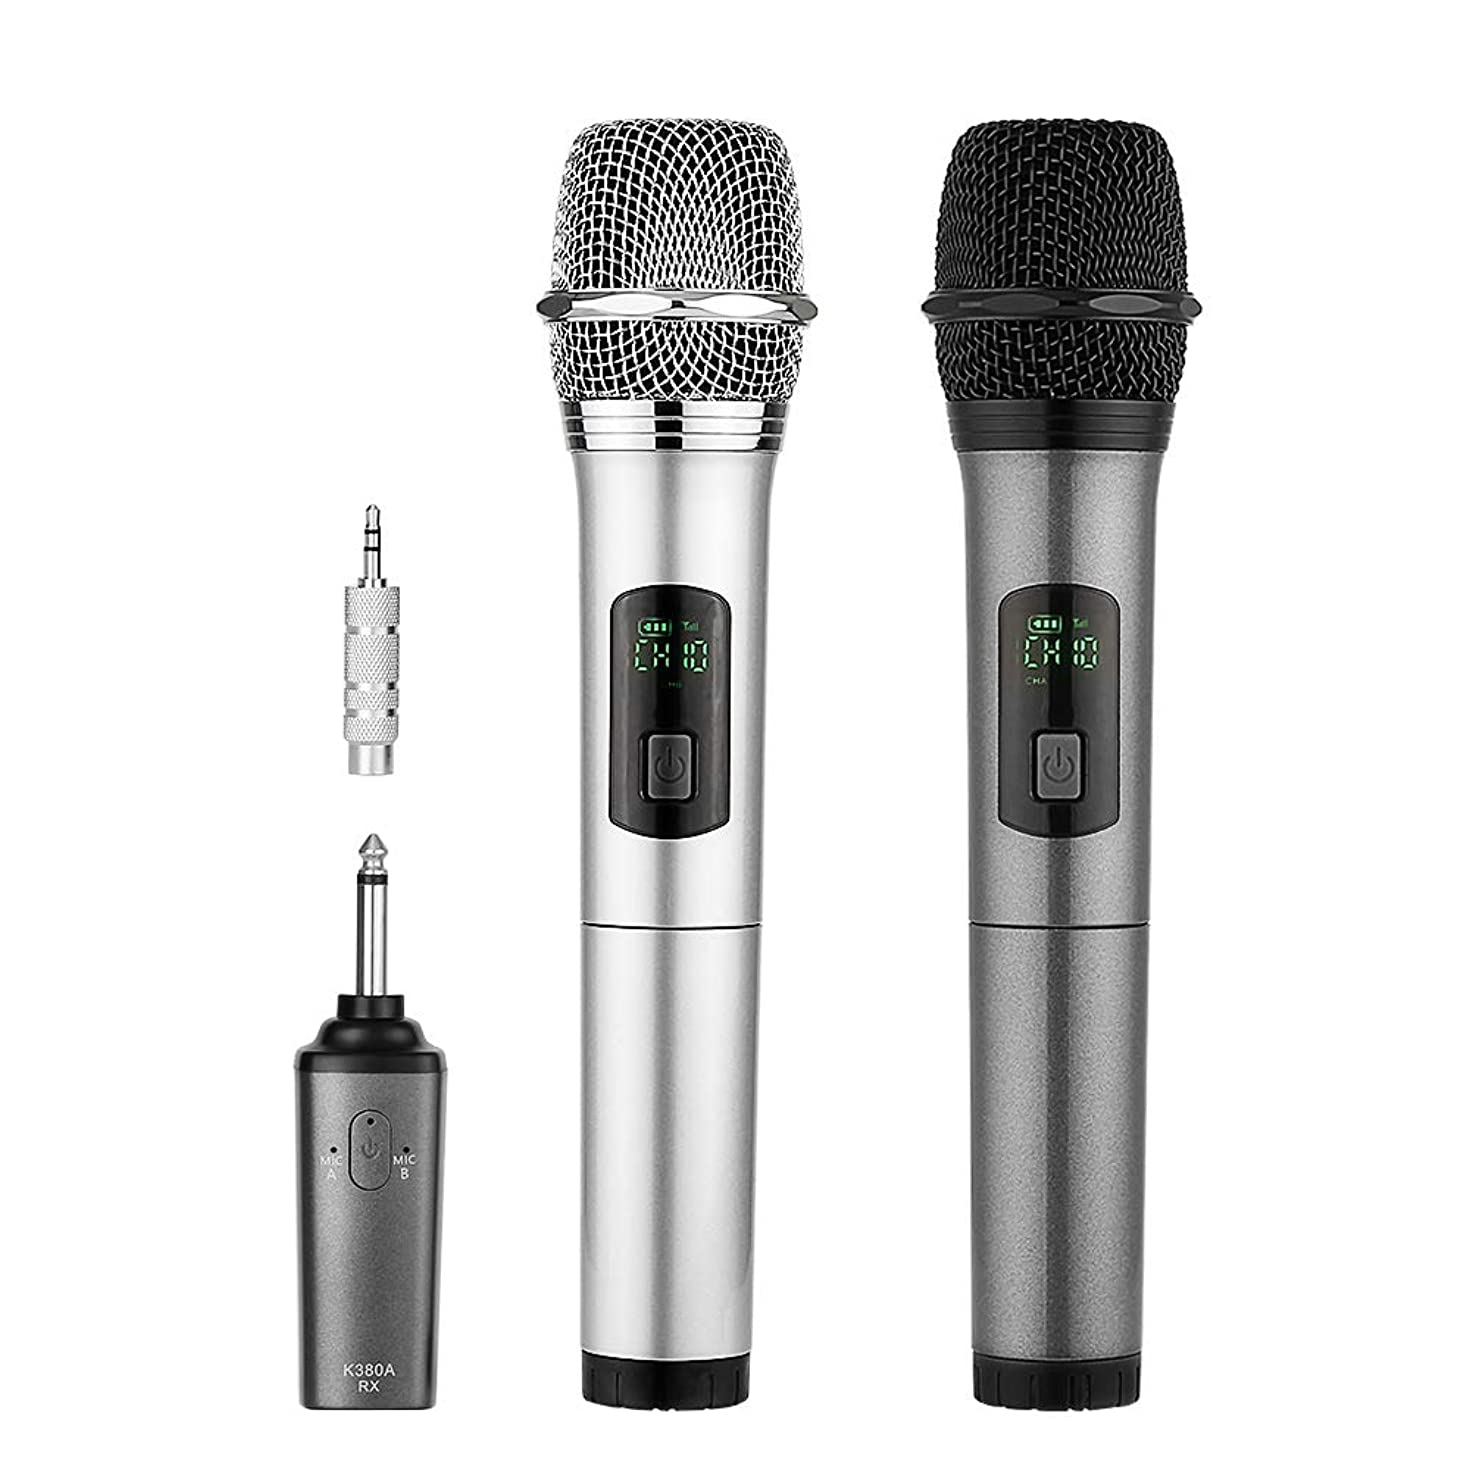 ARCHEER Dual Bluetooth Wireless Microphone, UHF Handheld Dynamic Microphone with Bluetooth Receiver and 3.5mm Adaptor, Selectable UHF Channels Karaoke Microphone for Singing and Other Purpose.